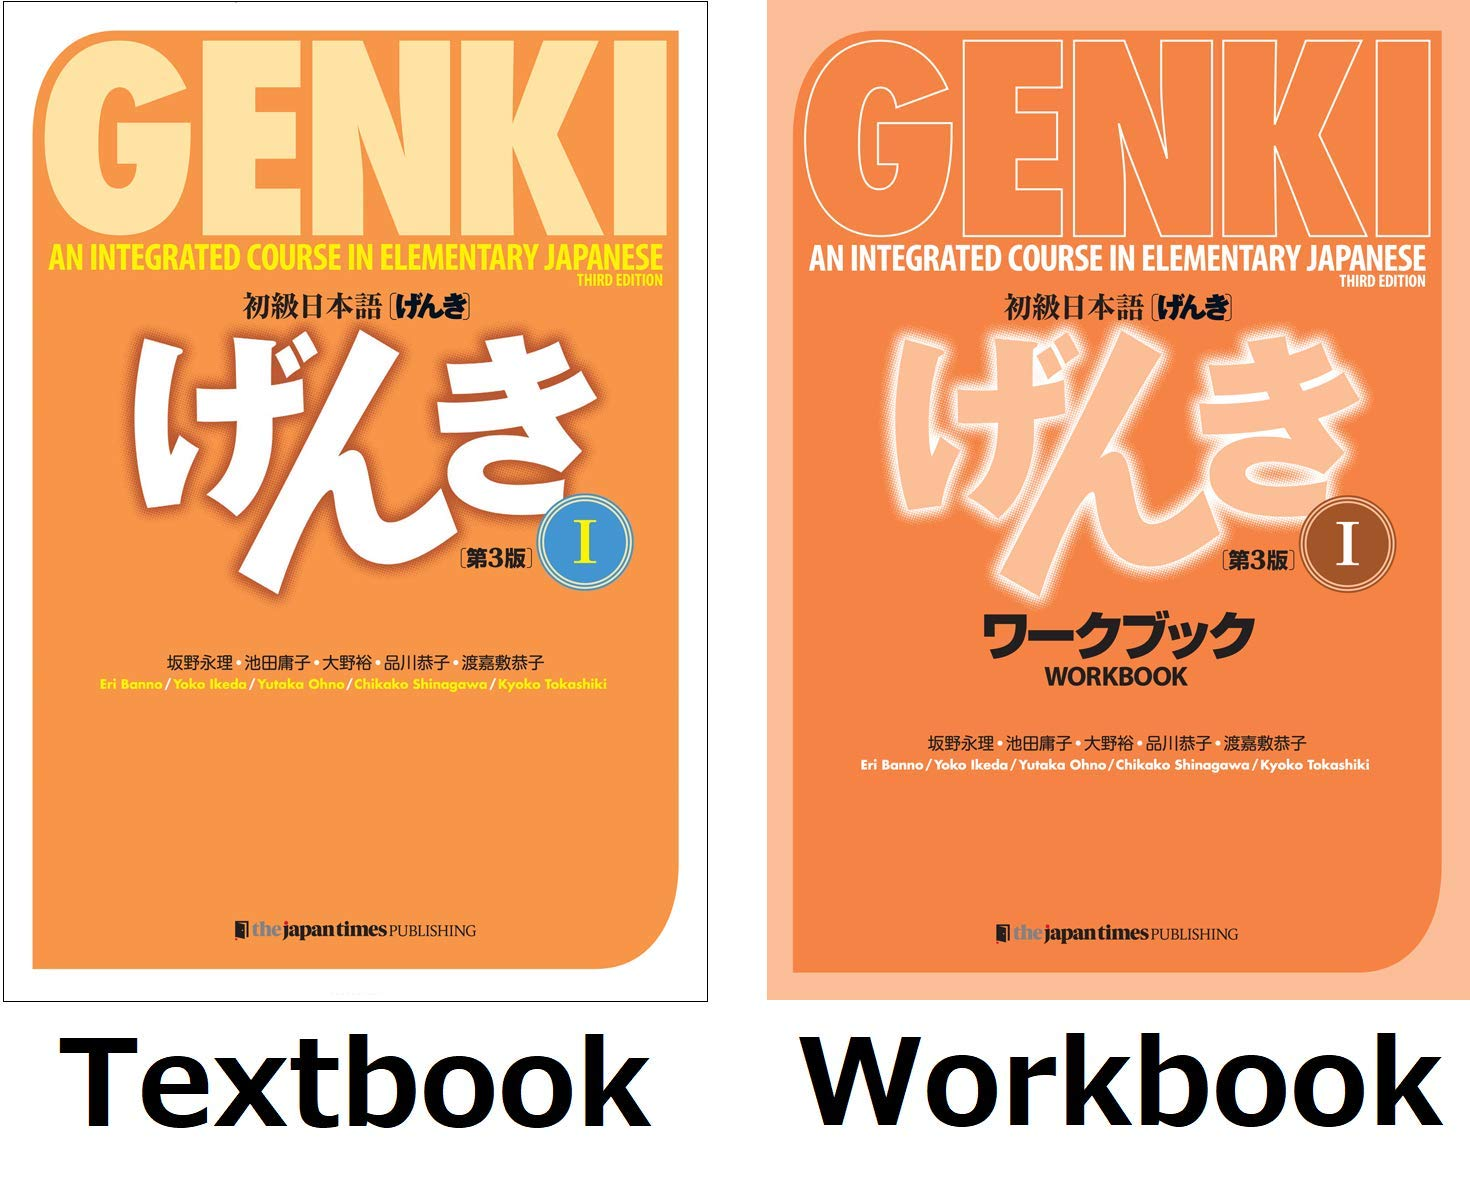 Genki 1 Third Edition An Integrated Course In Elementary Japanese 1 Textbook Workbook Set Eri Banno Yoko Ikeda Yutaka Ohno 9784889969443 Amazon Com Books